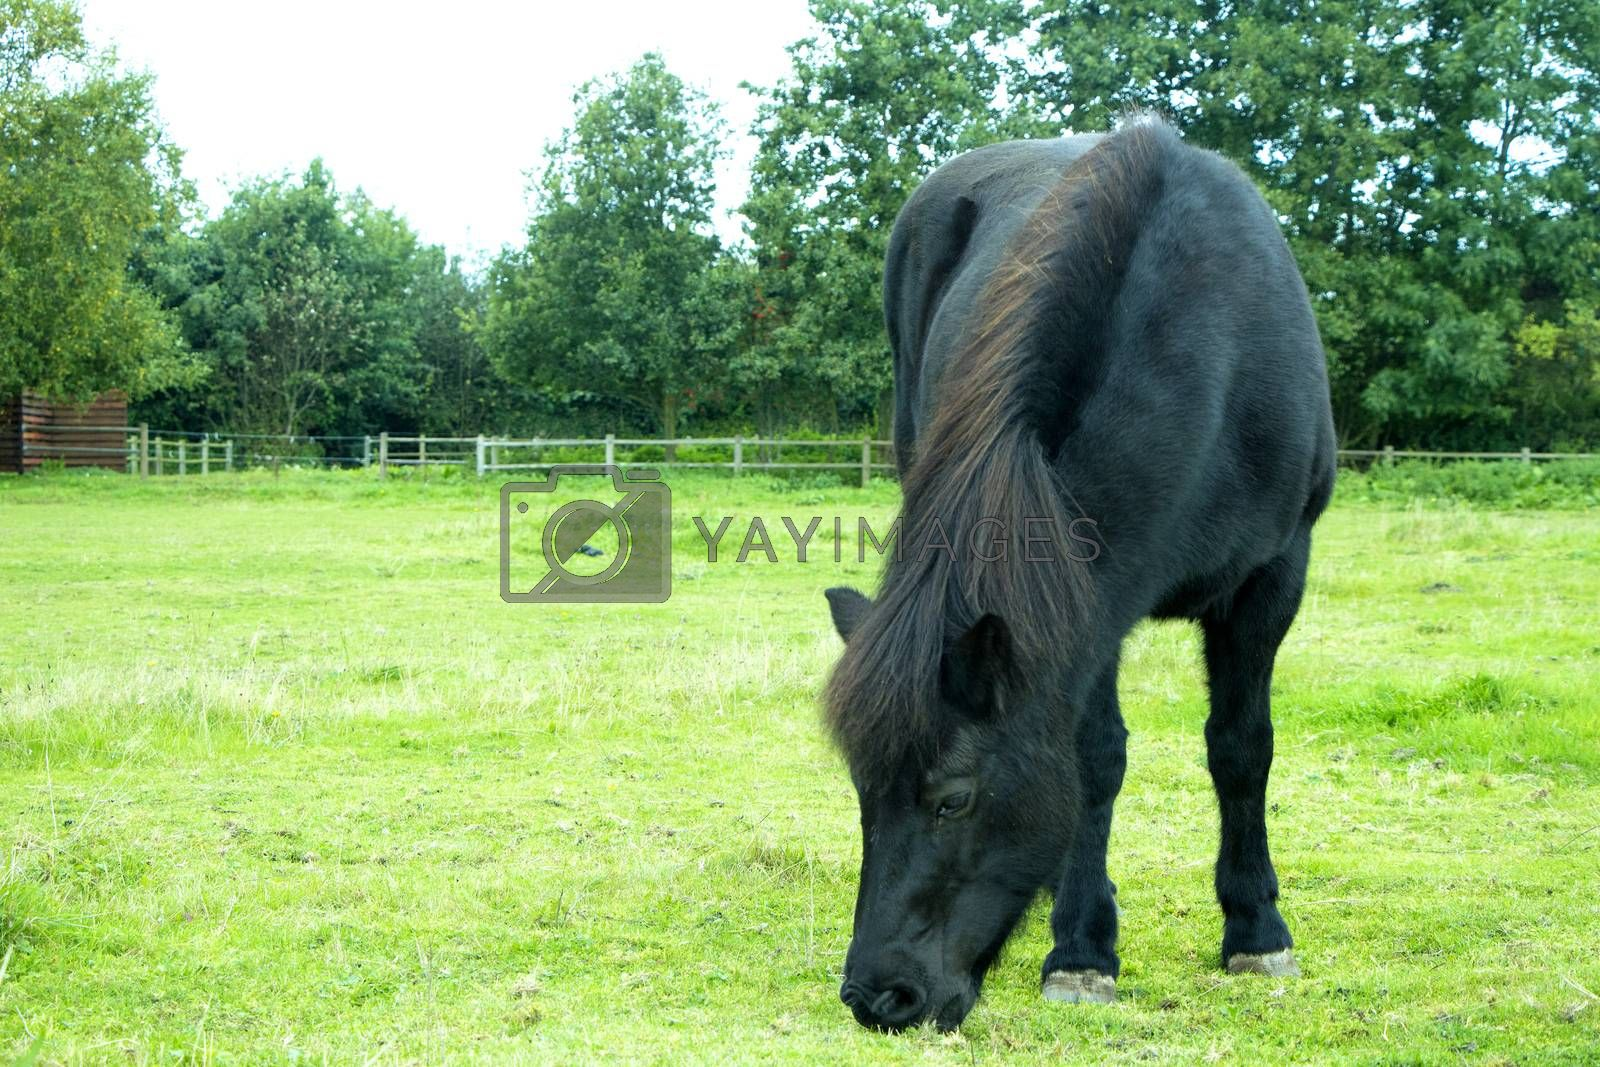 Black horse eating and standing on green grass field on a sunny day in summer.